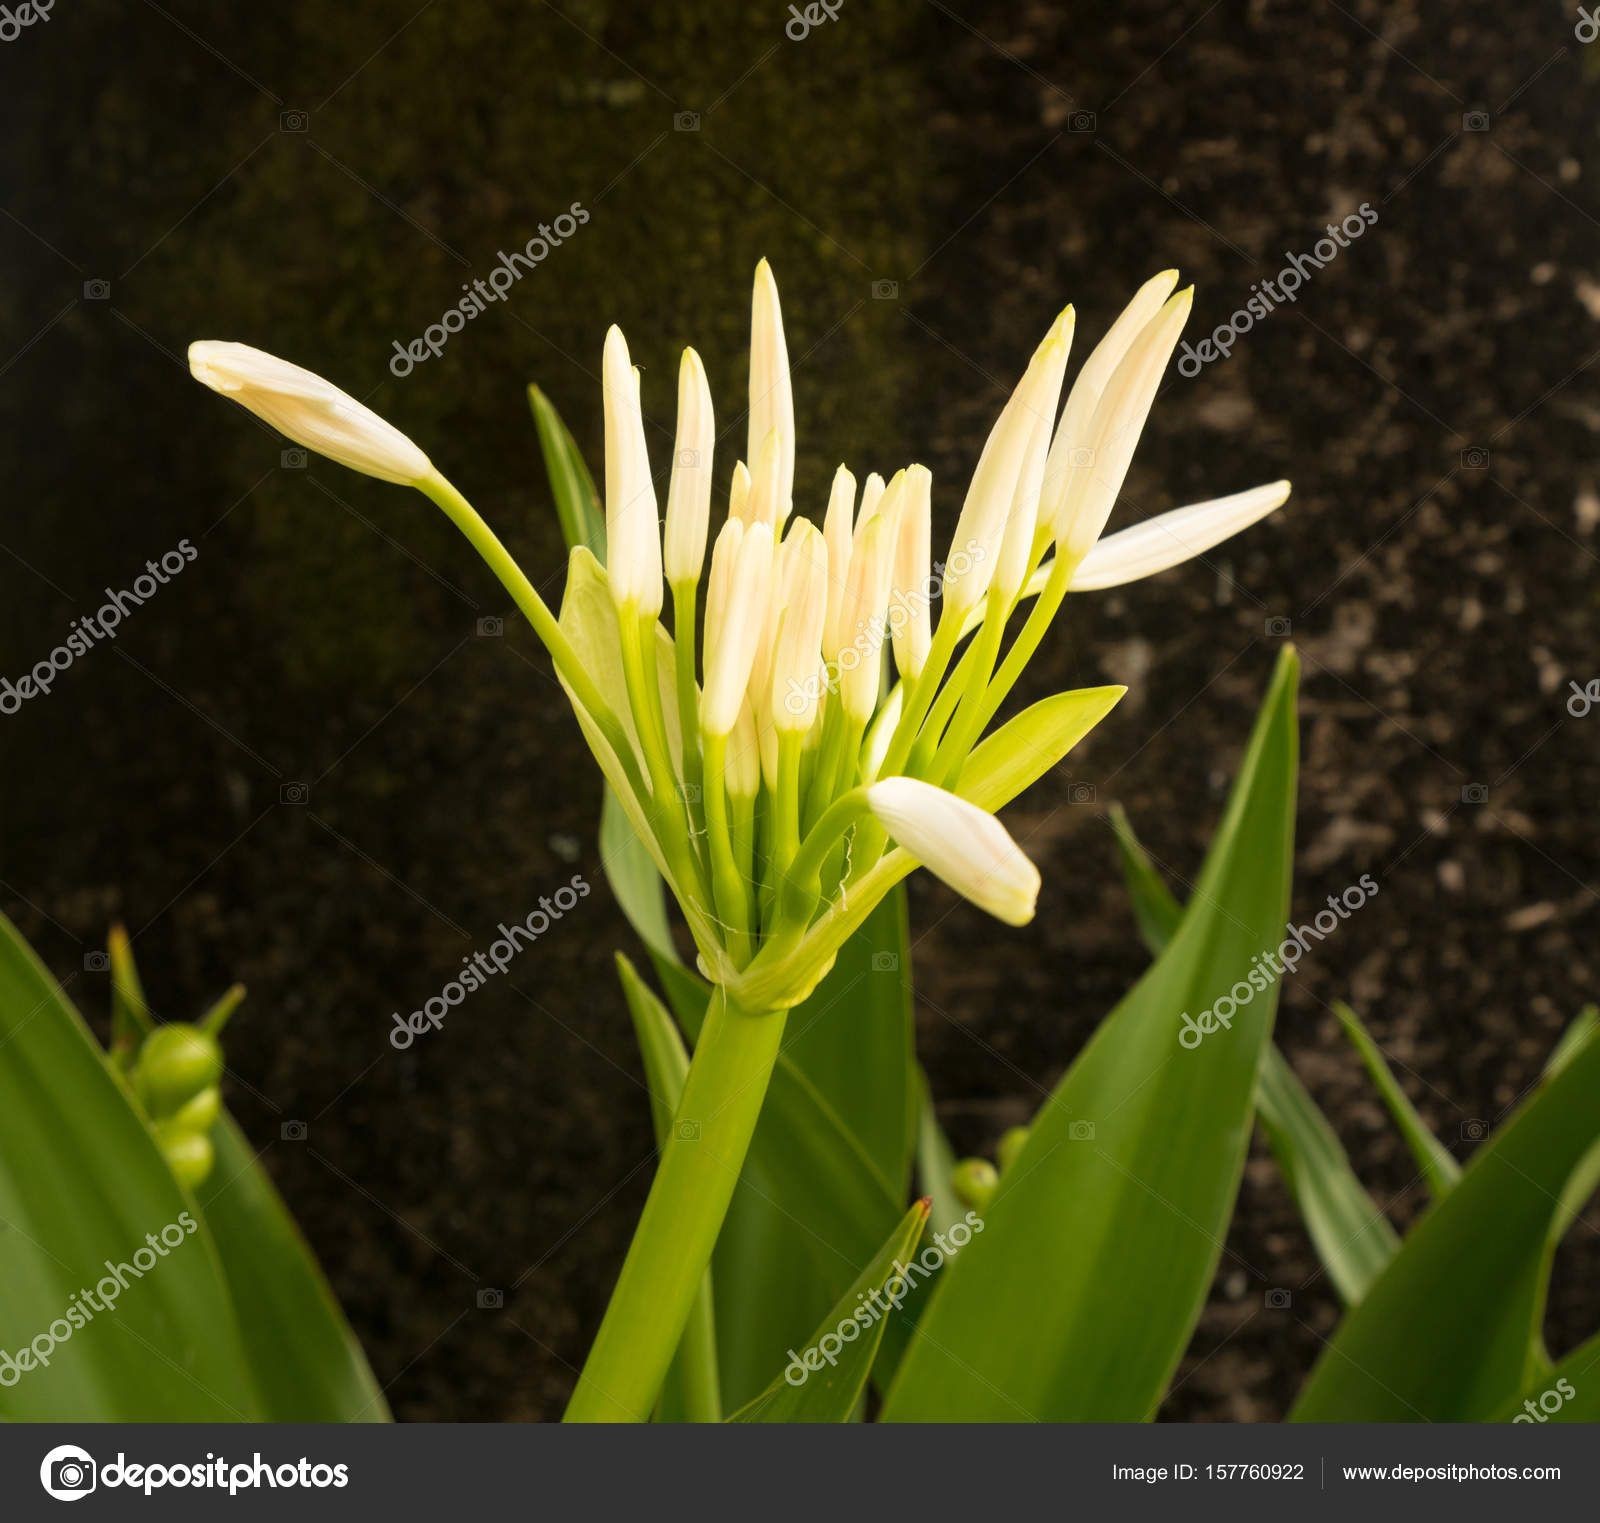 White spider lily flower in shade of a tree stock photo white spider lily flower in shade of a tree stock photo izmirmasajfo